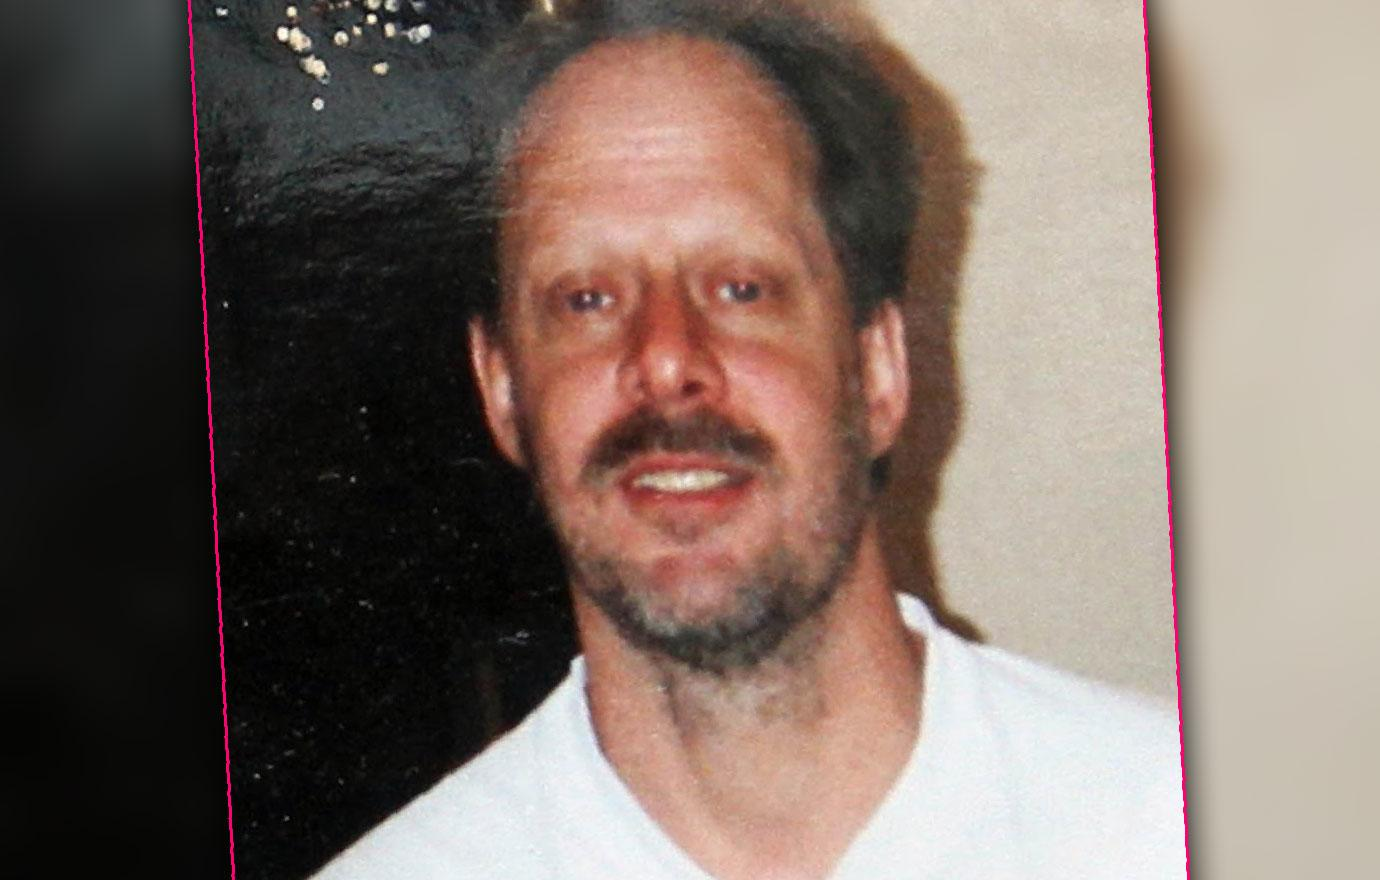 Vegas Shooter Stephen Paddock Prostitute Reveals Rape Fantasies